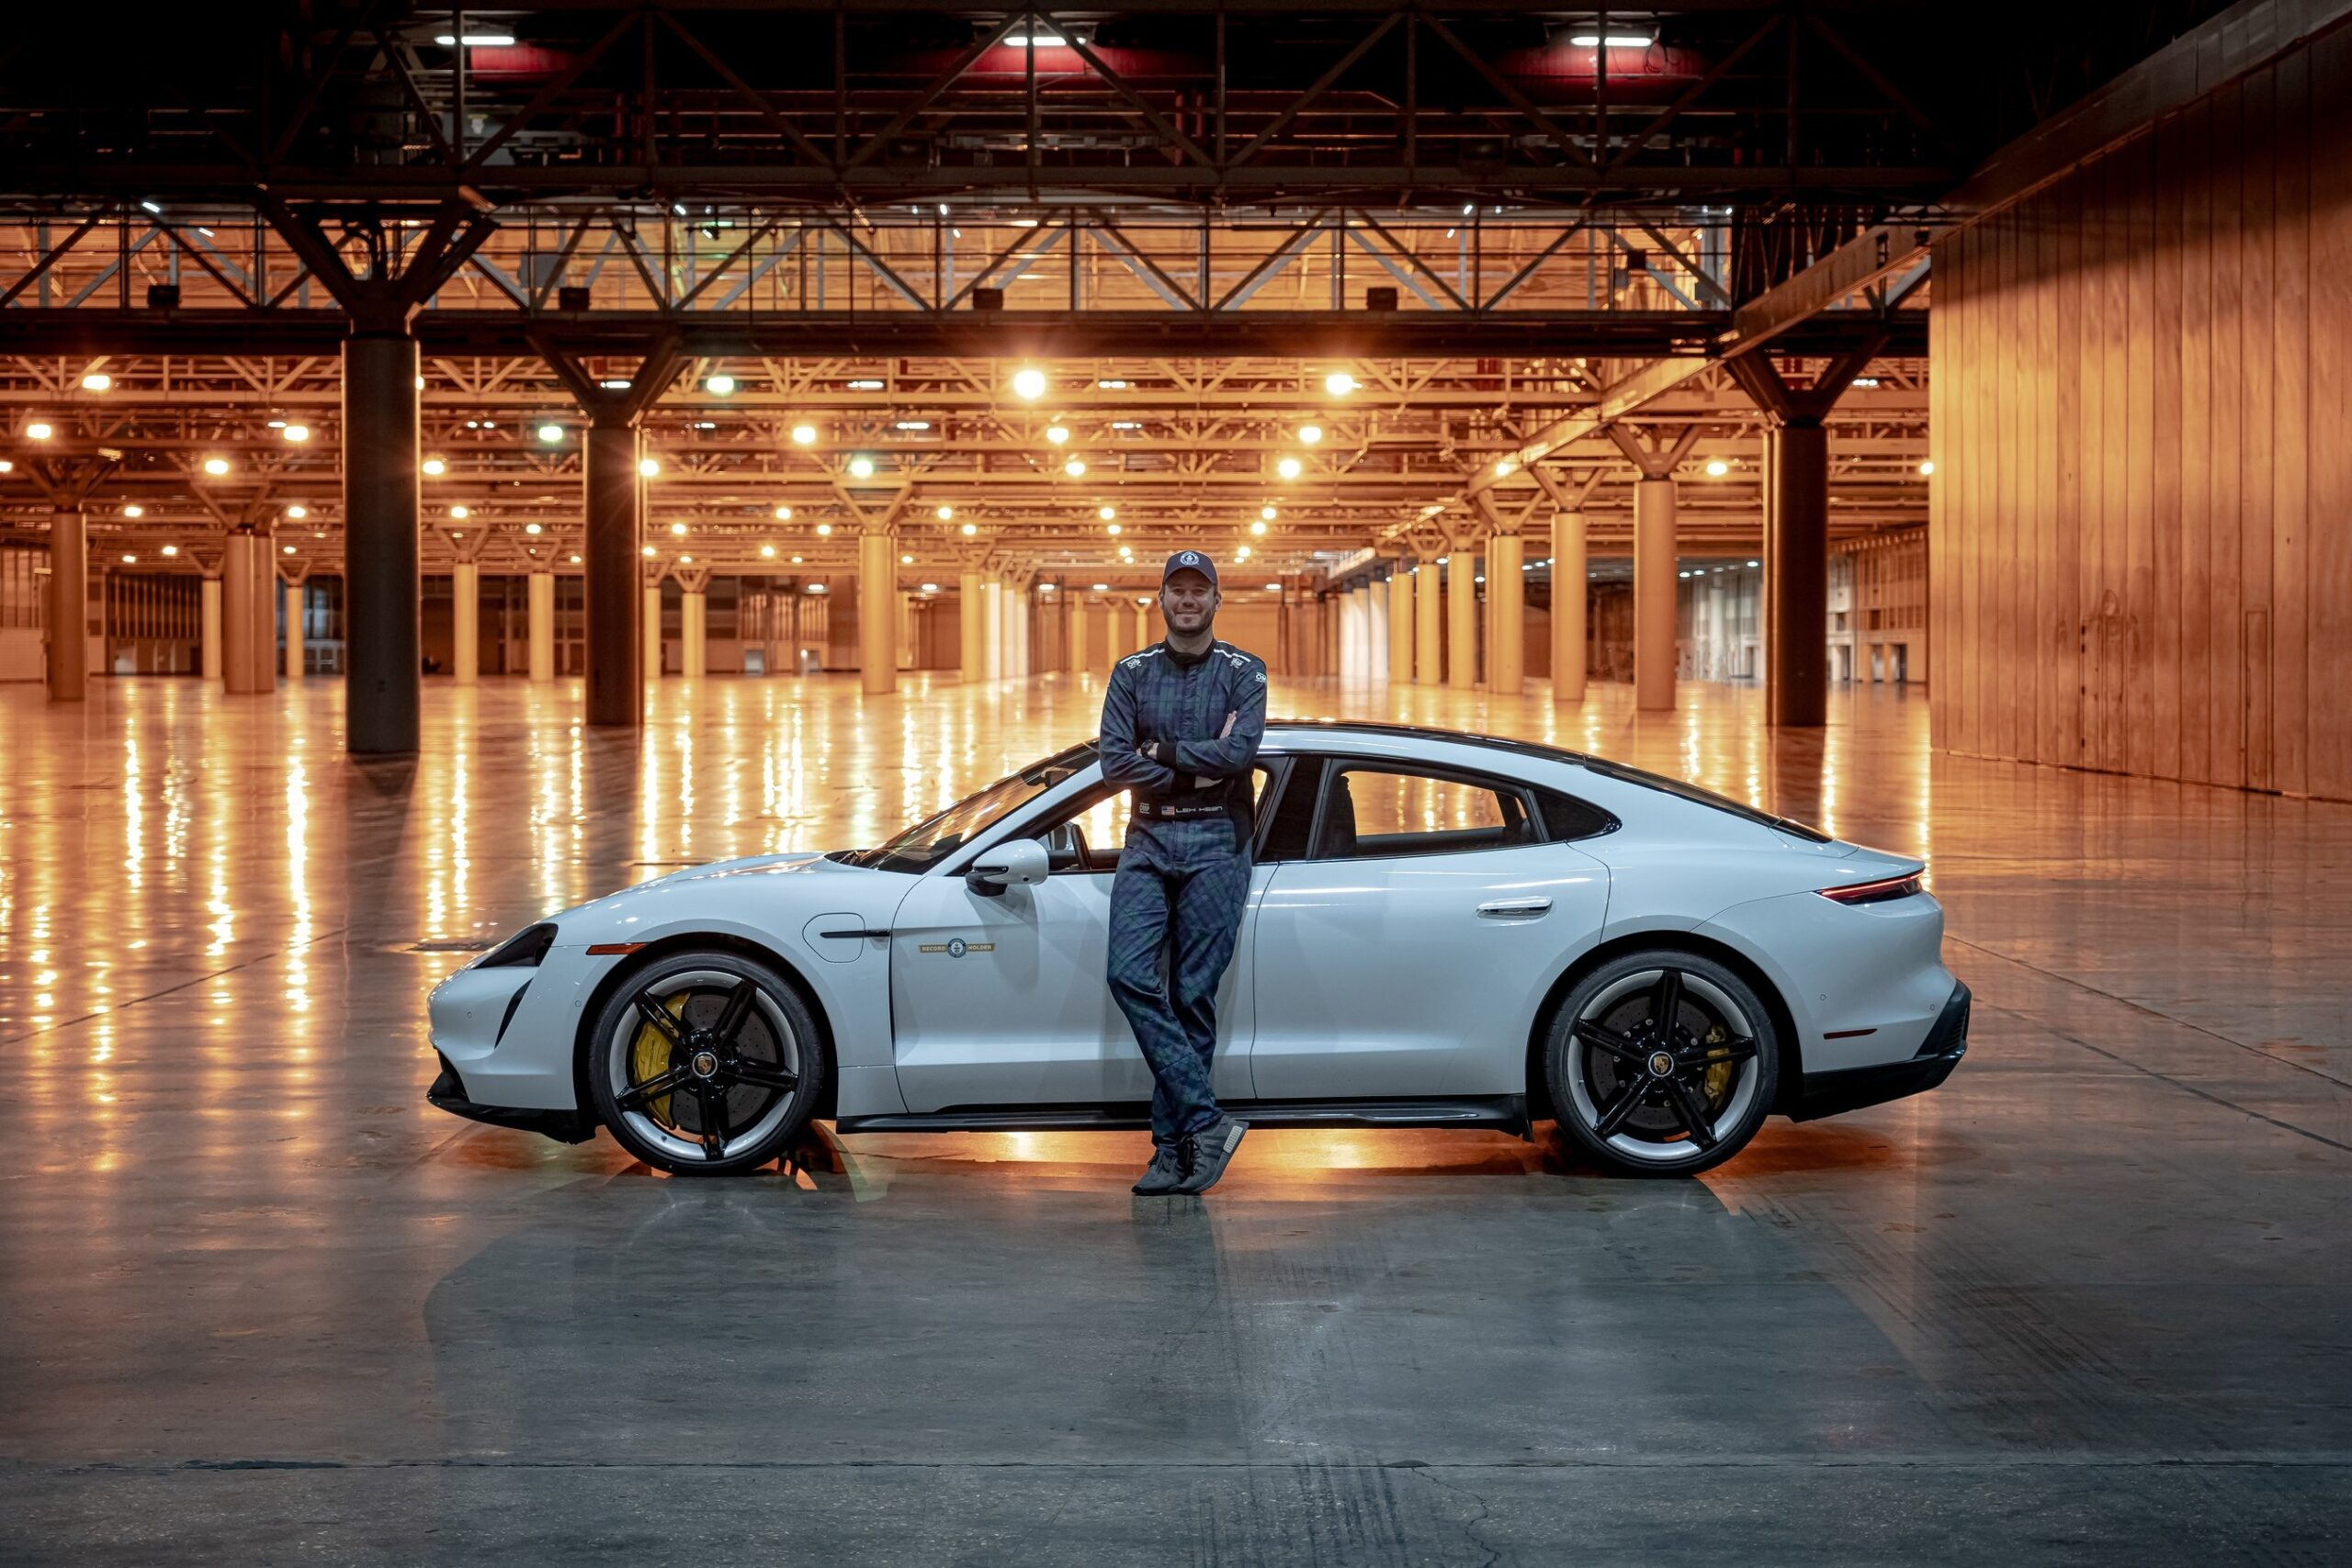 Did Pirelli tyres carry Leh Keen's Porsche Taycan to 102mph indoor land speed record?